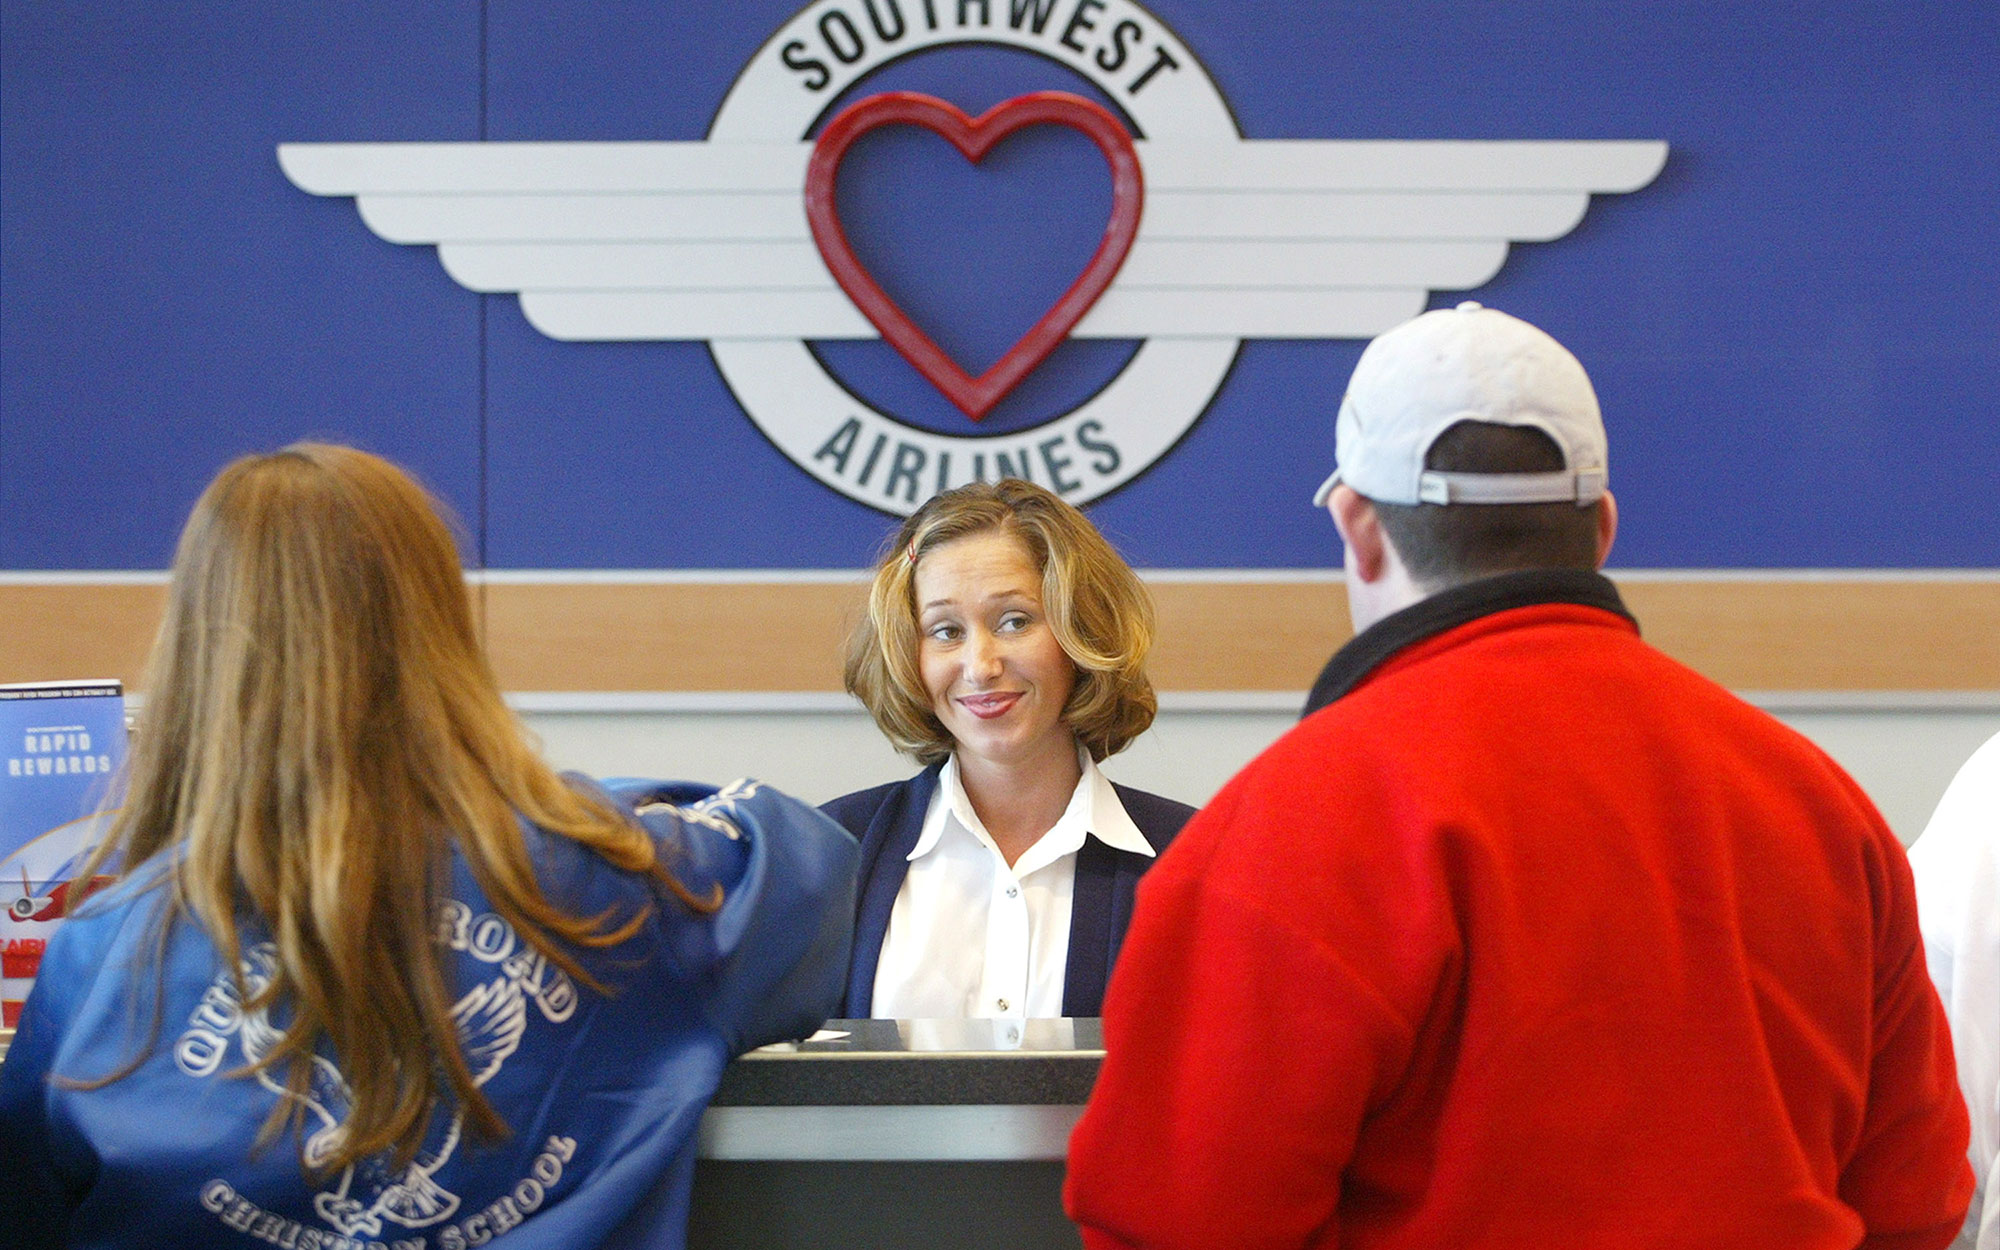 World's Best Airlines for Customer Service: Southwest, Domestic